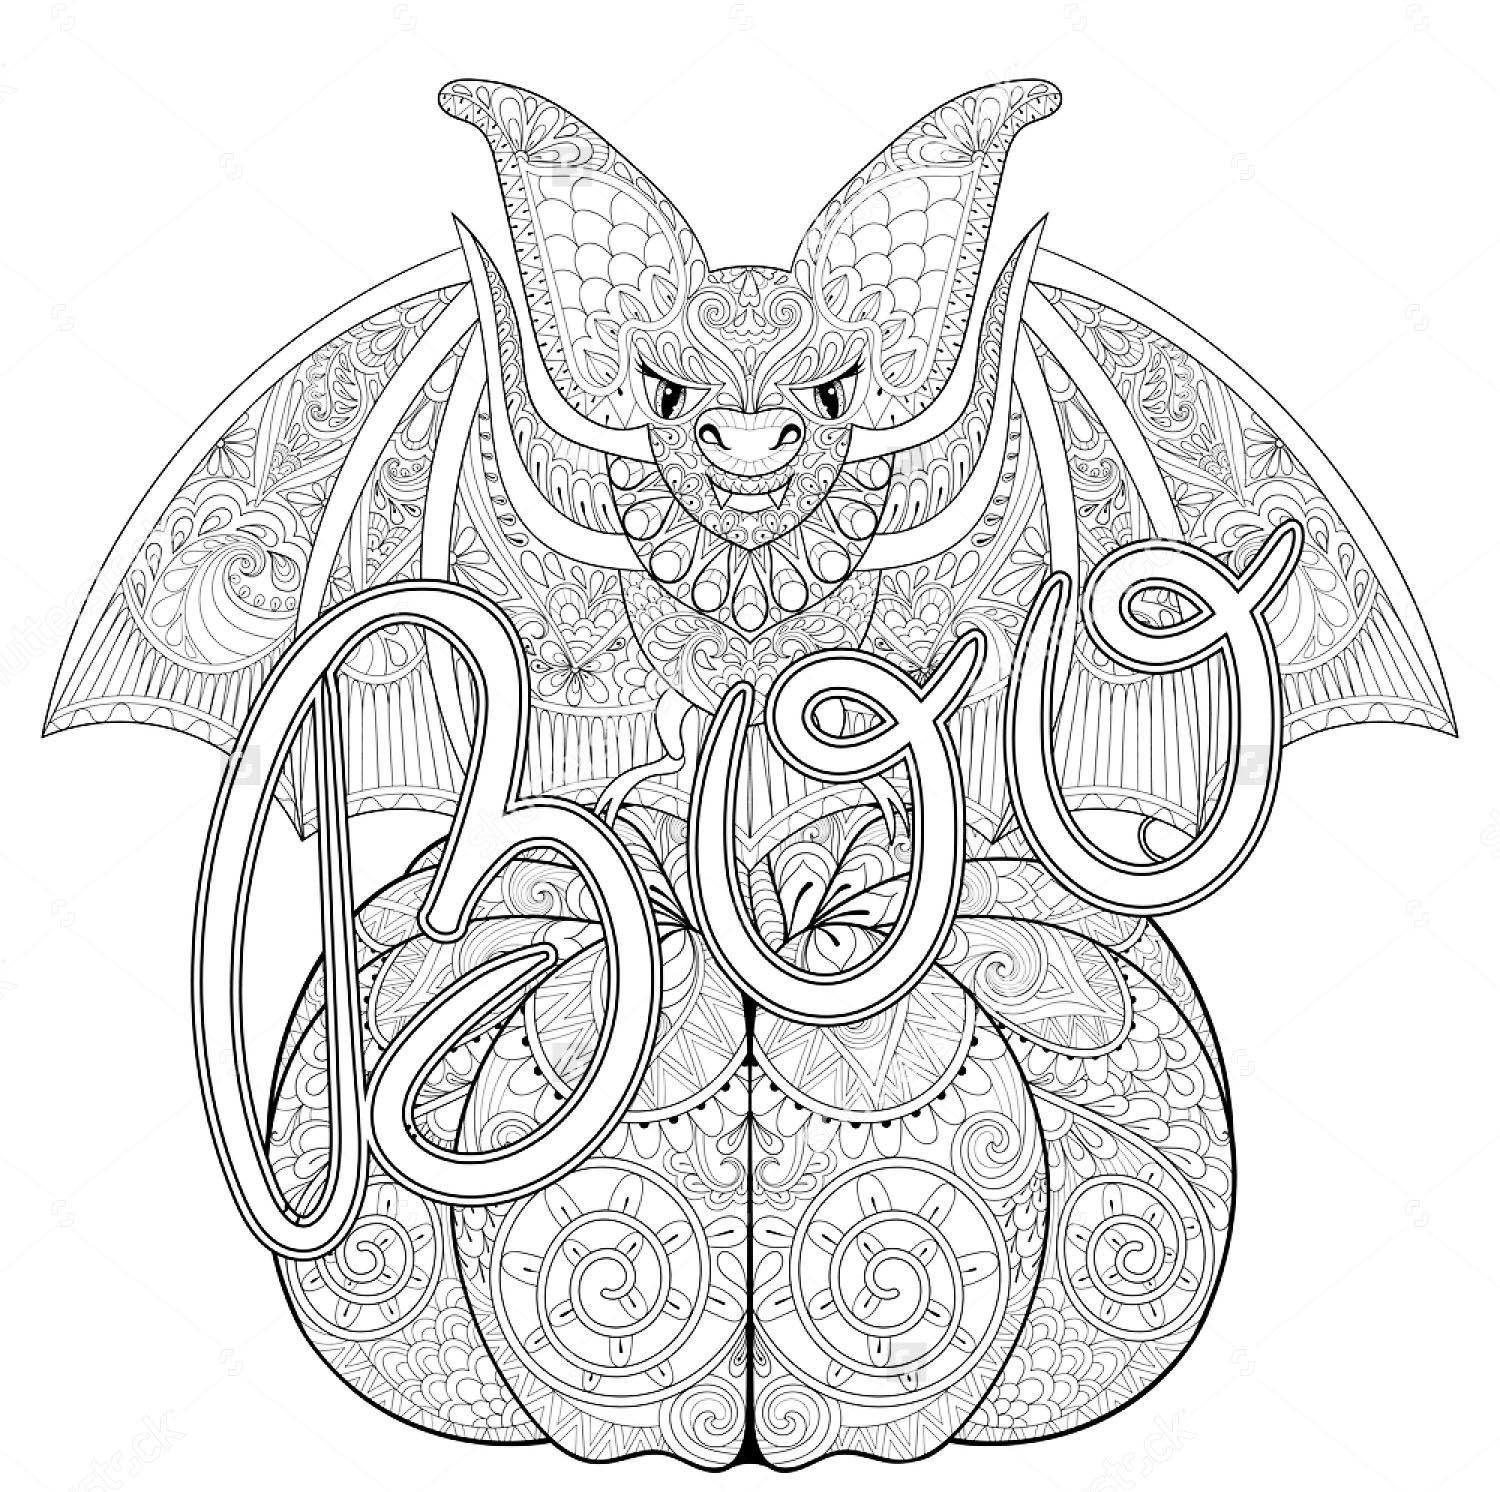 Coloring adult halloween zentangle bat